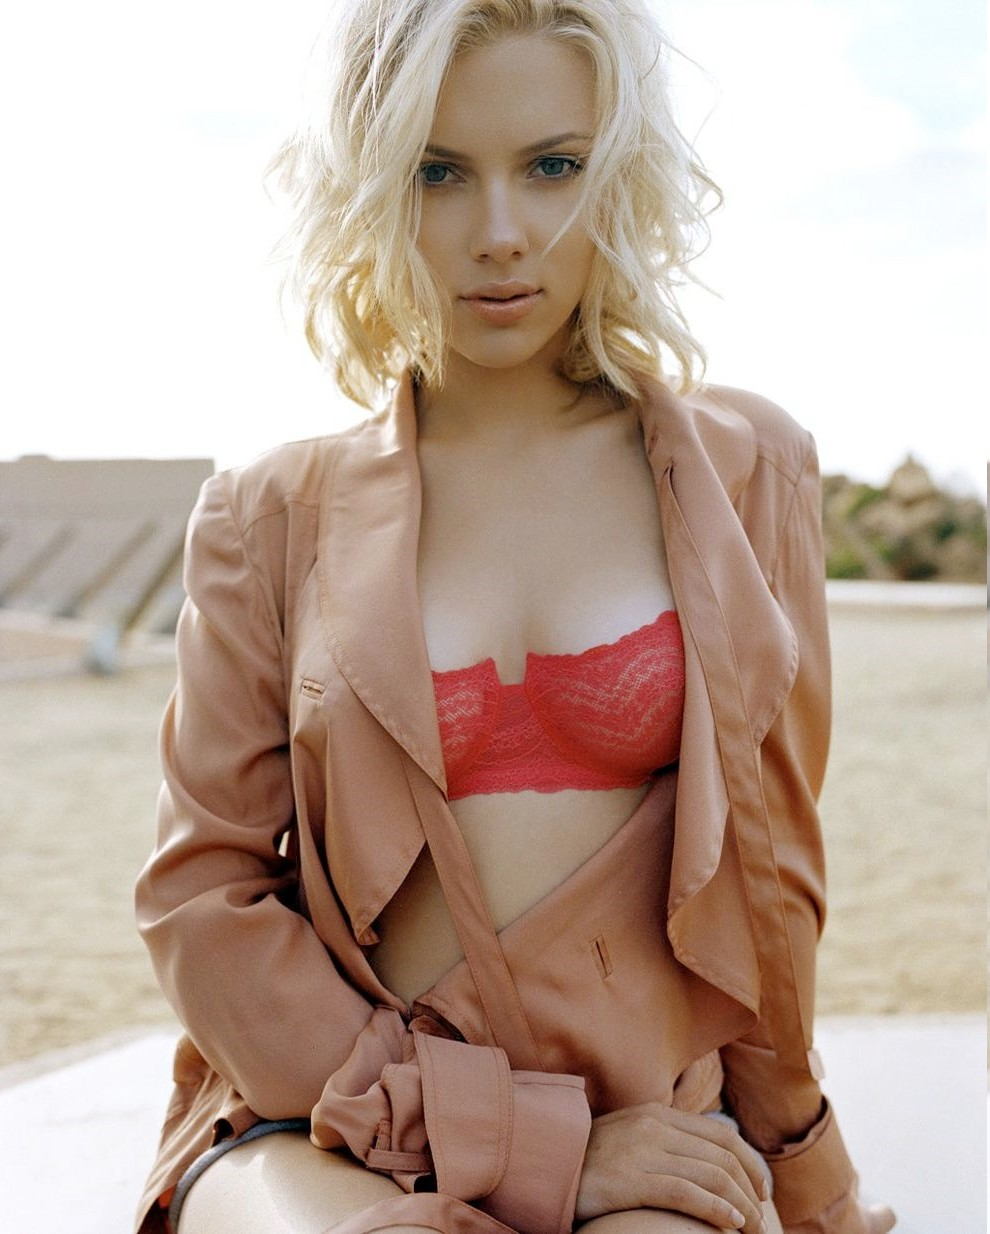 scarlett johansson model - photo #5